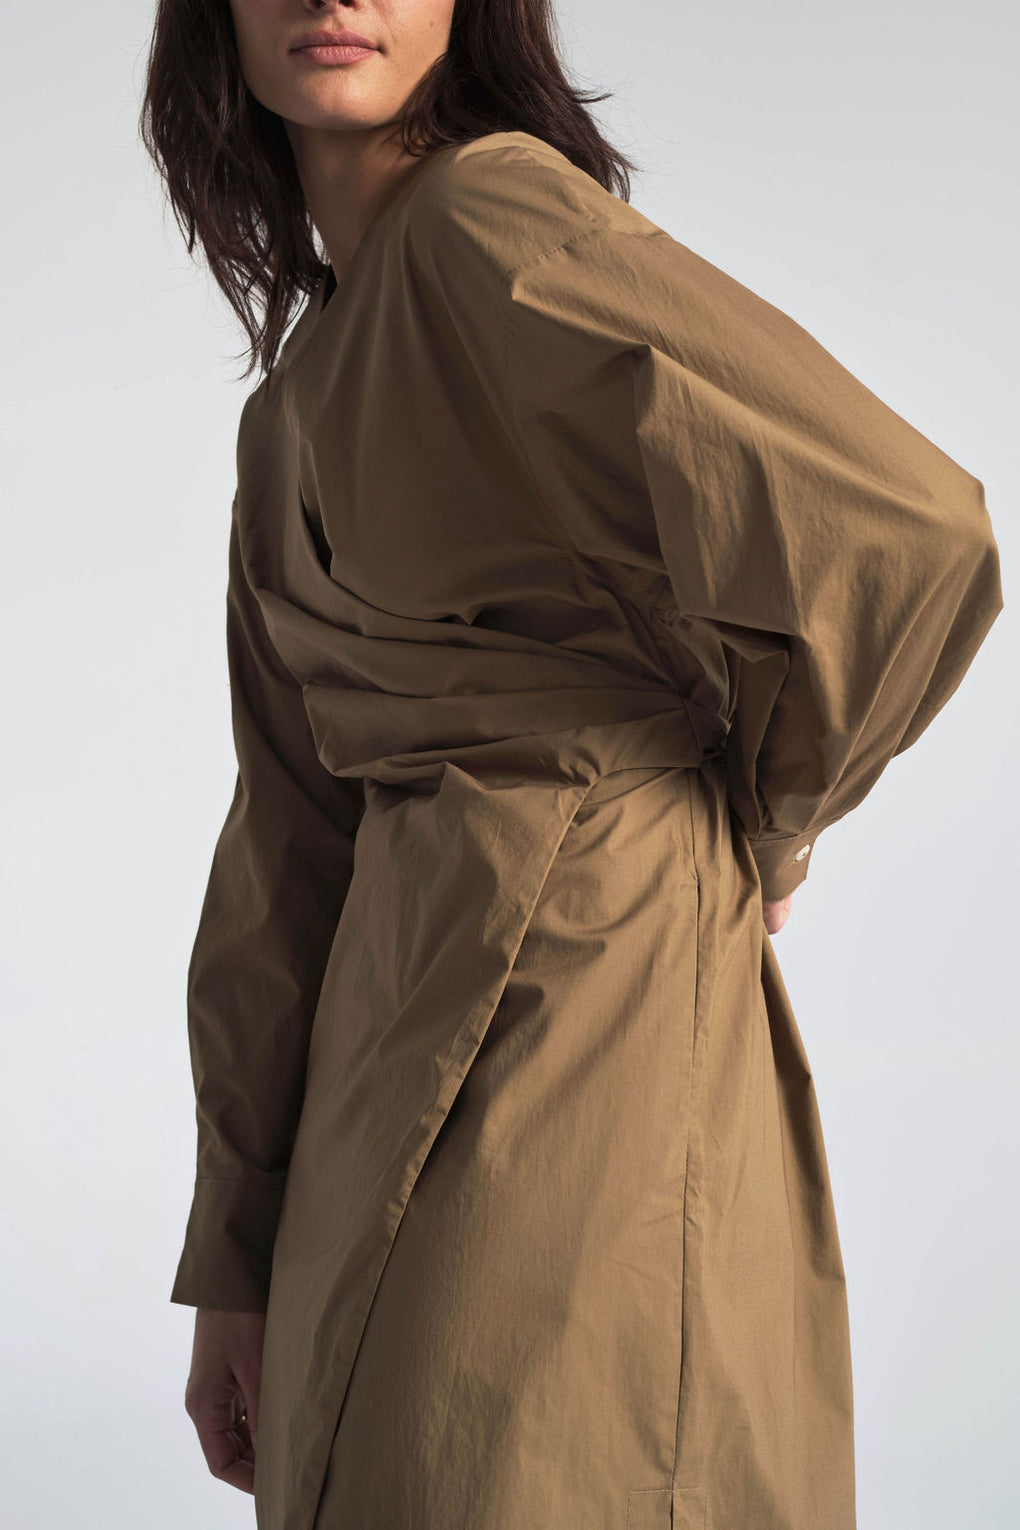 Shaina Mote-Idun-Saint Paul-Independent Shop-Hira Dress-Wrap Dress